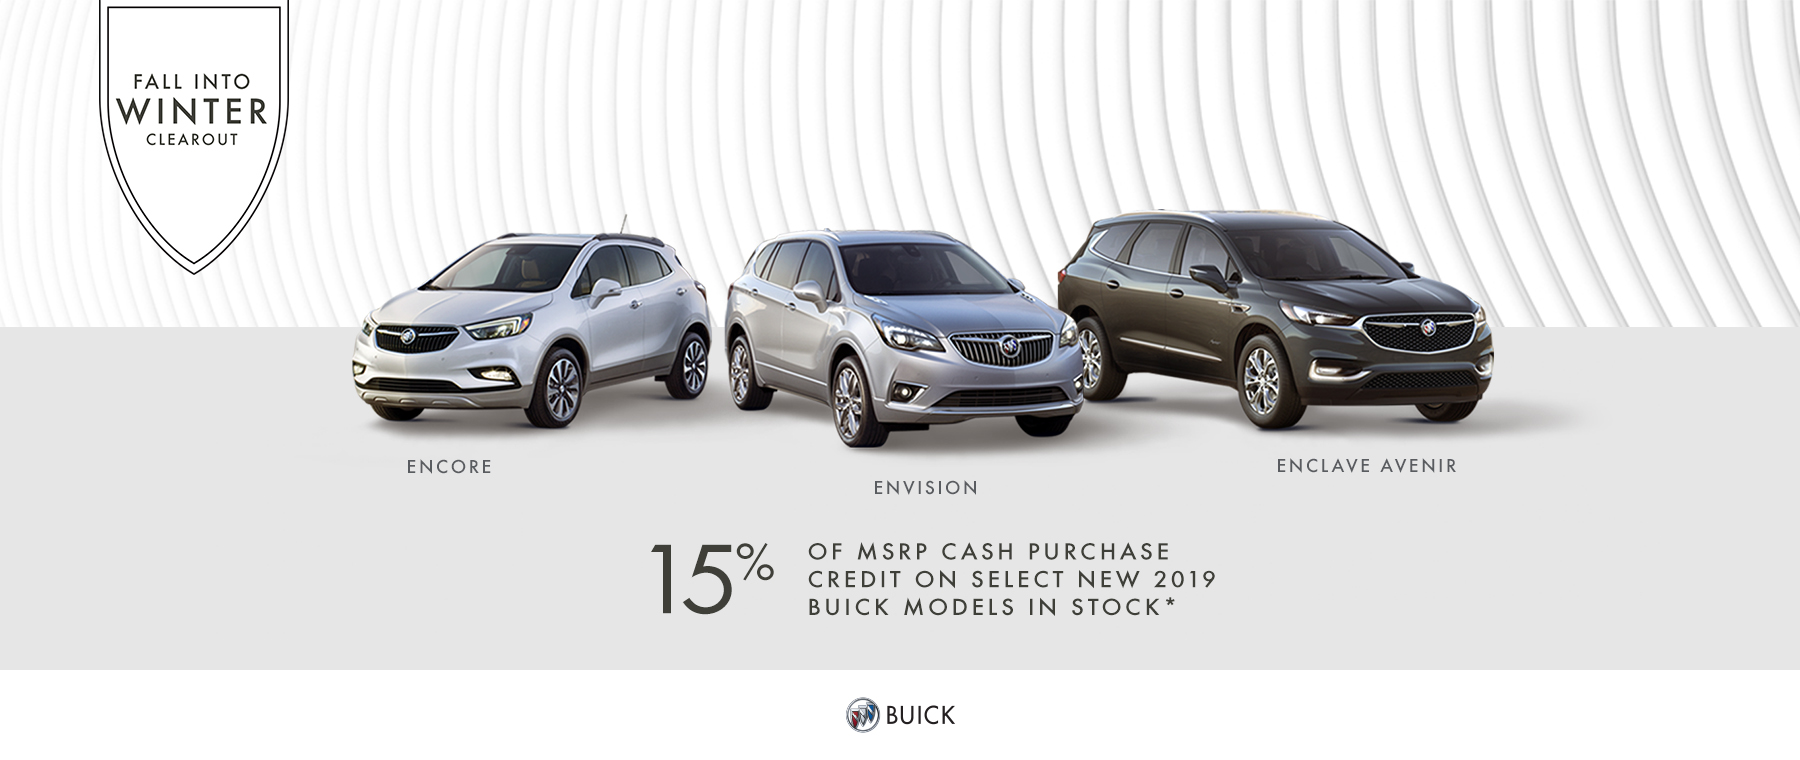 2019 Buick - Fall Into Winter Clearout